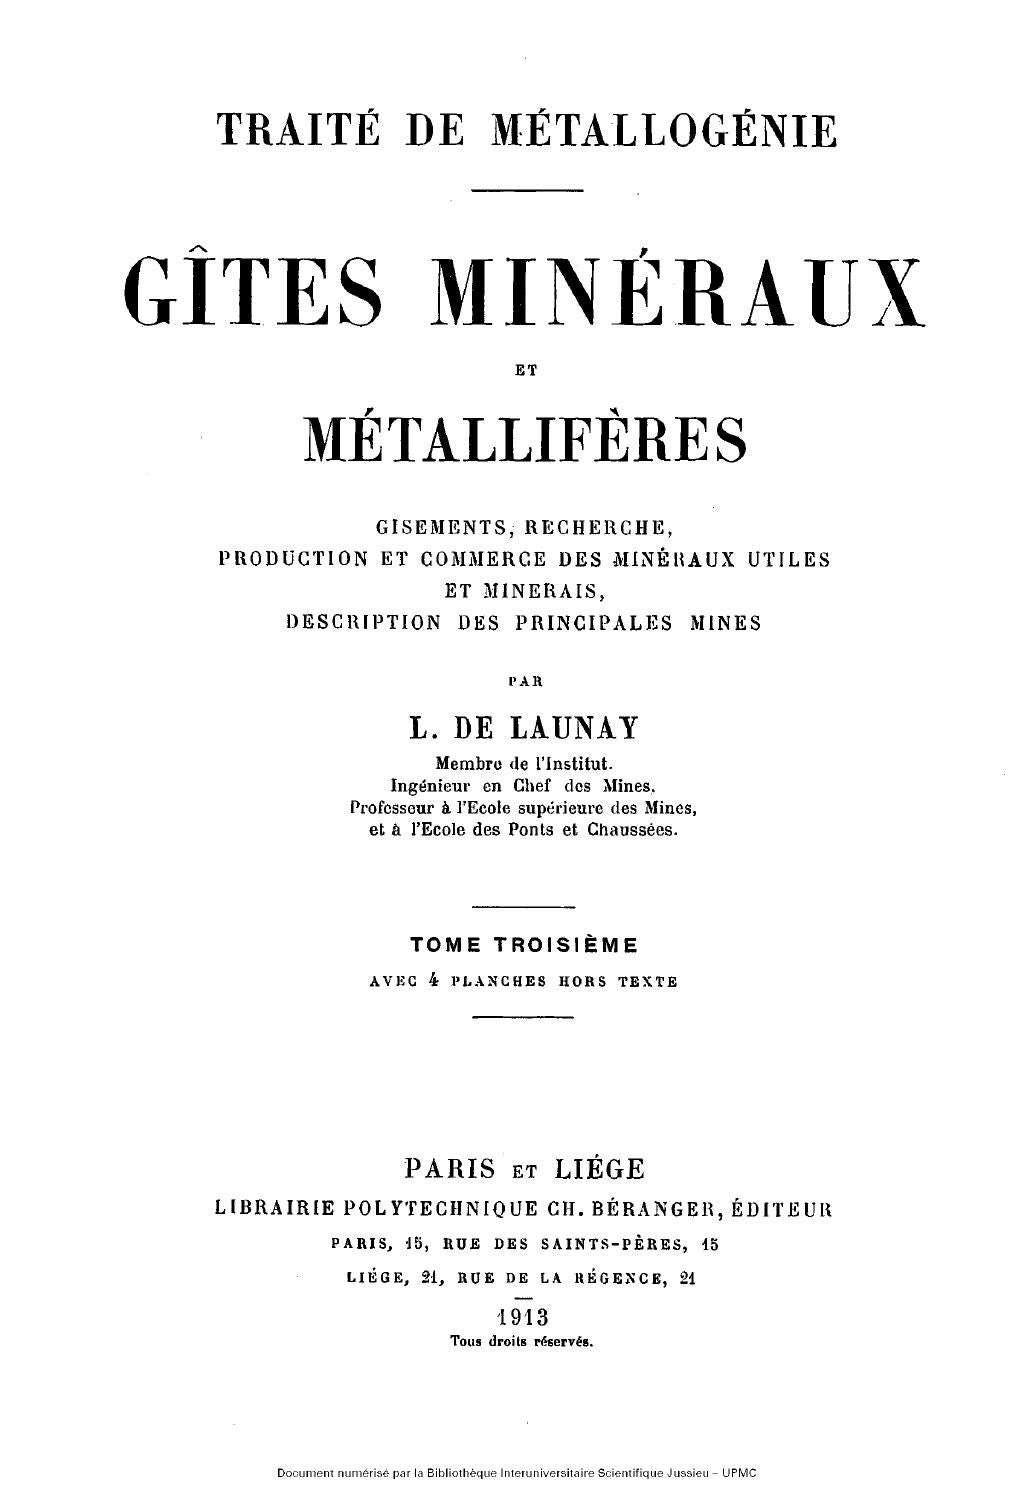 Gite mineraux pages 248 255 by anthie verykiou - issuu